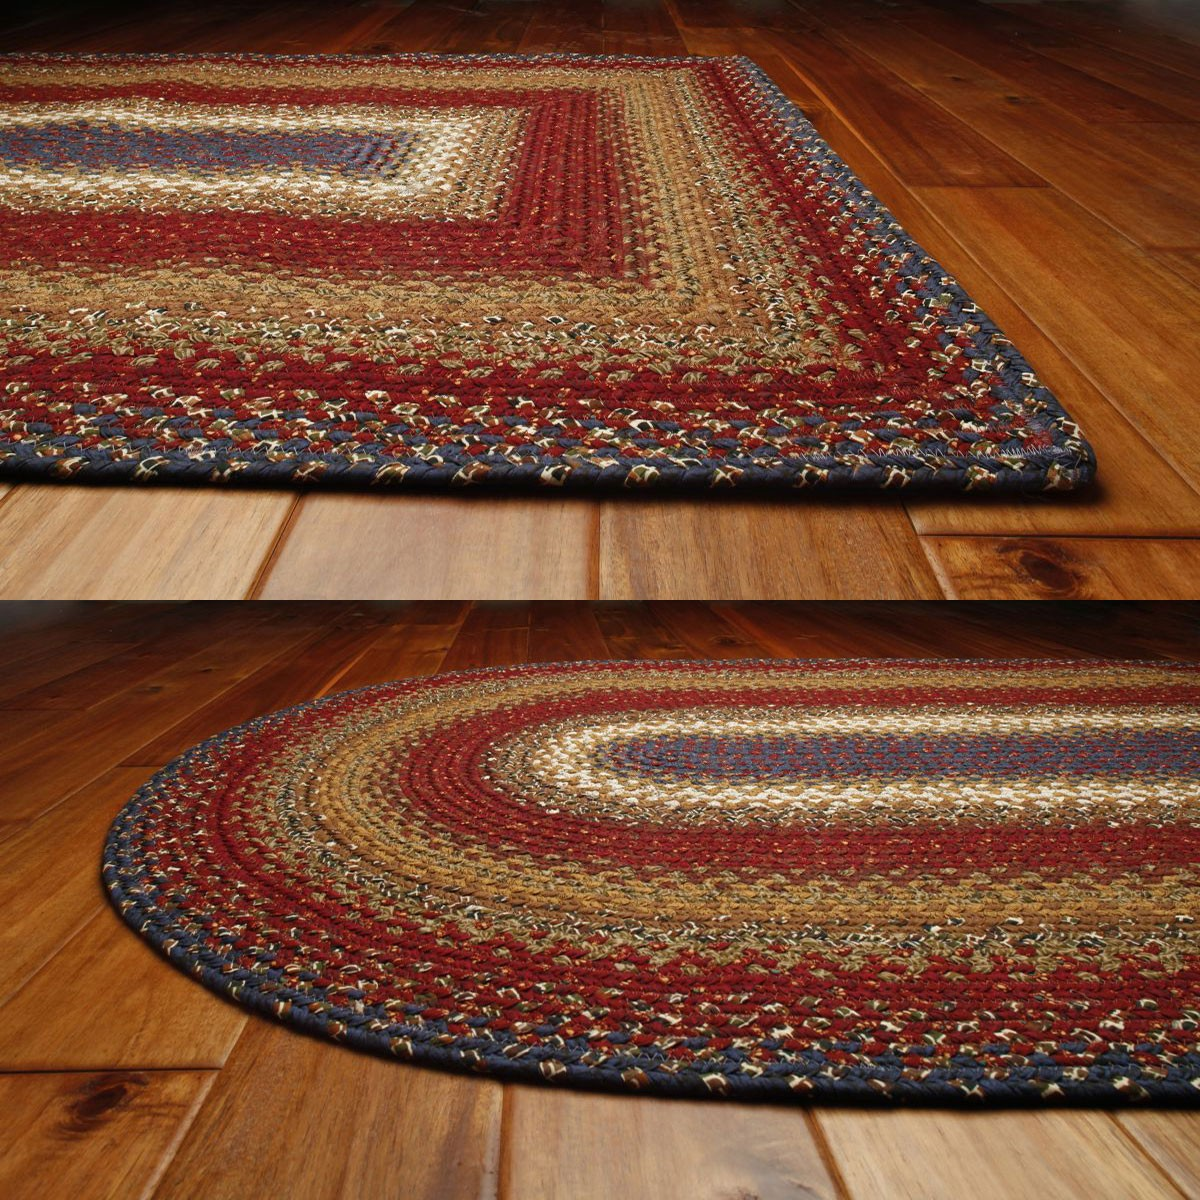 Log Cabin Step Cotton Braided Rugs